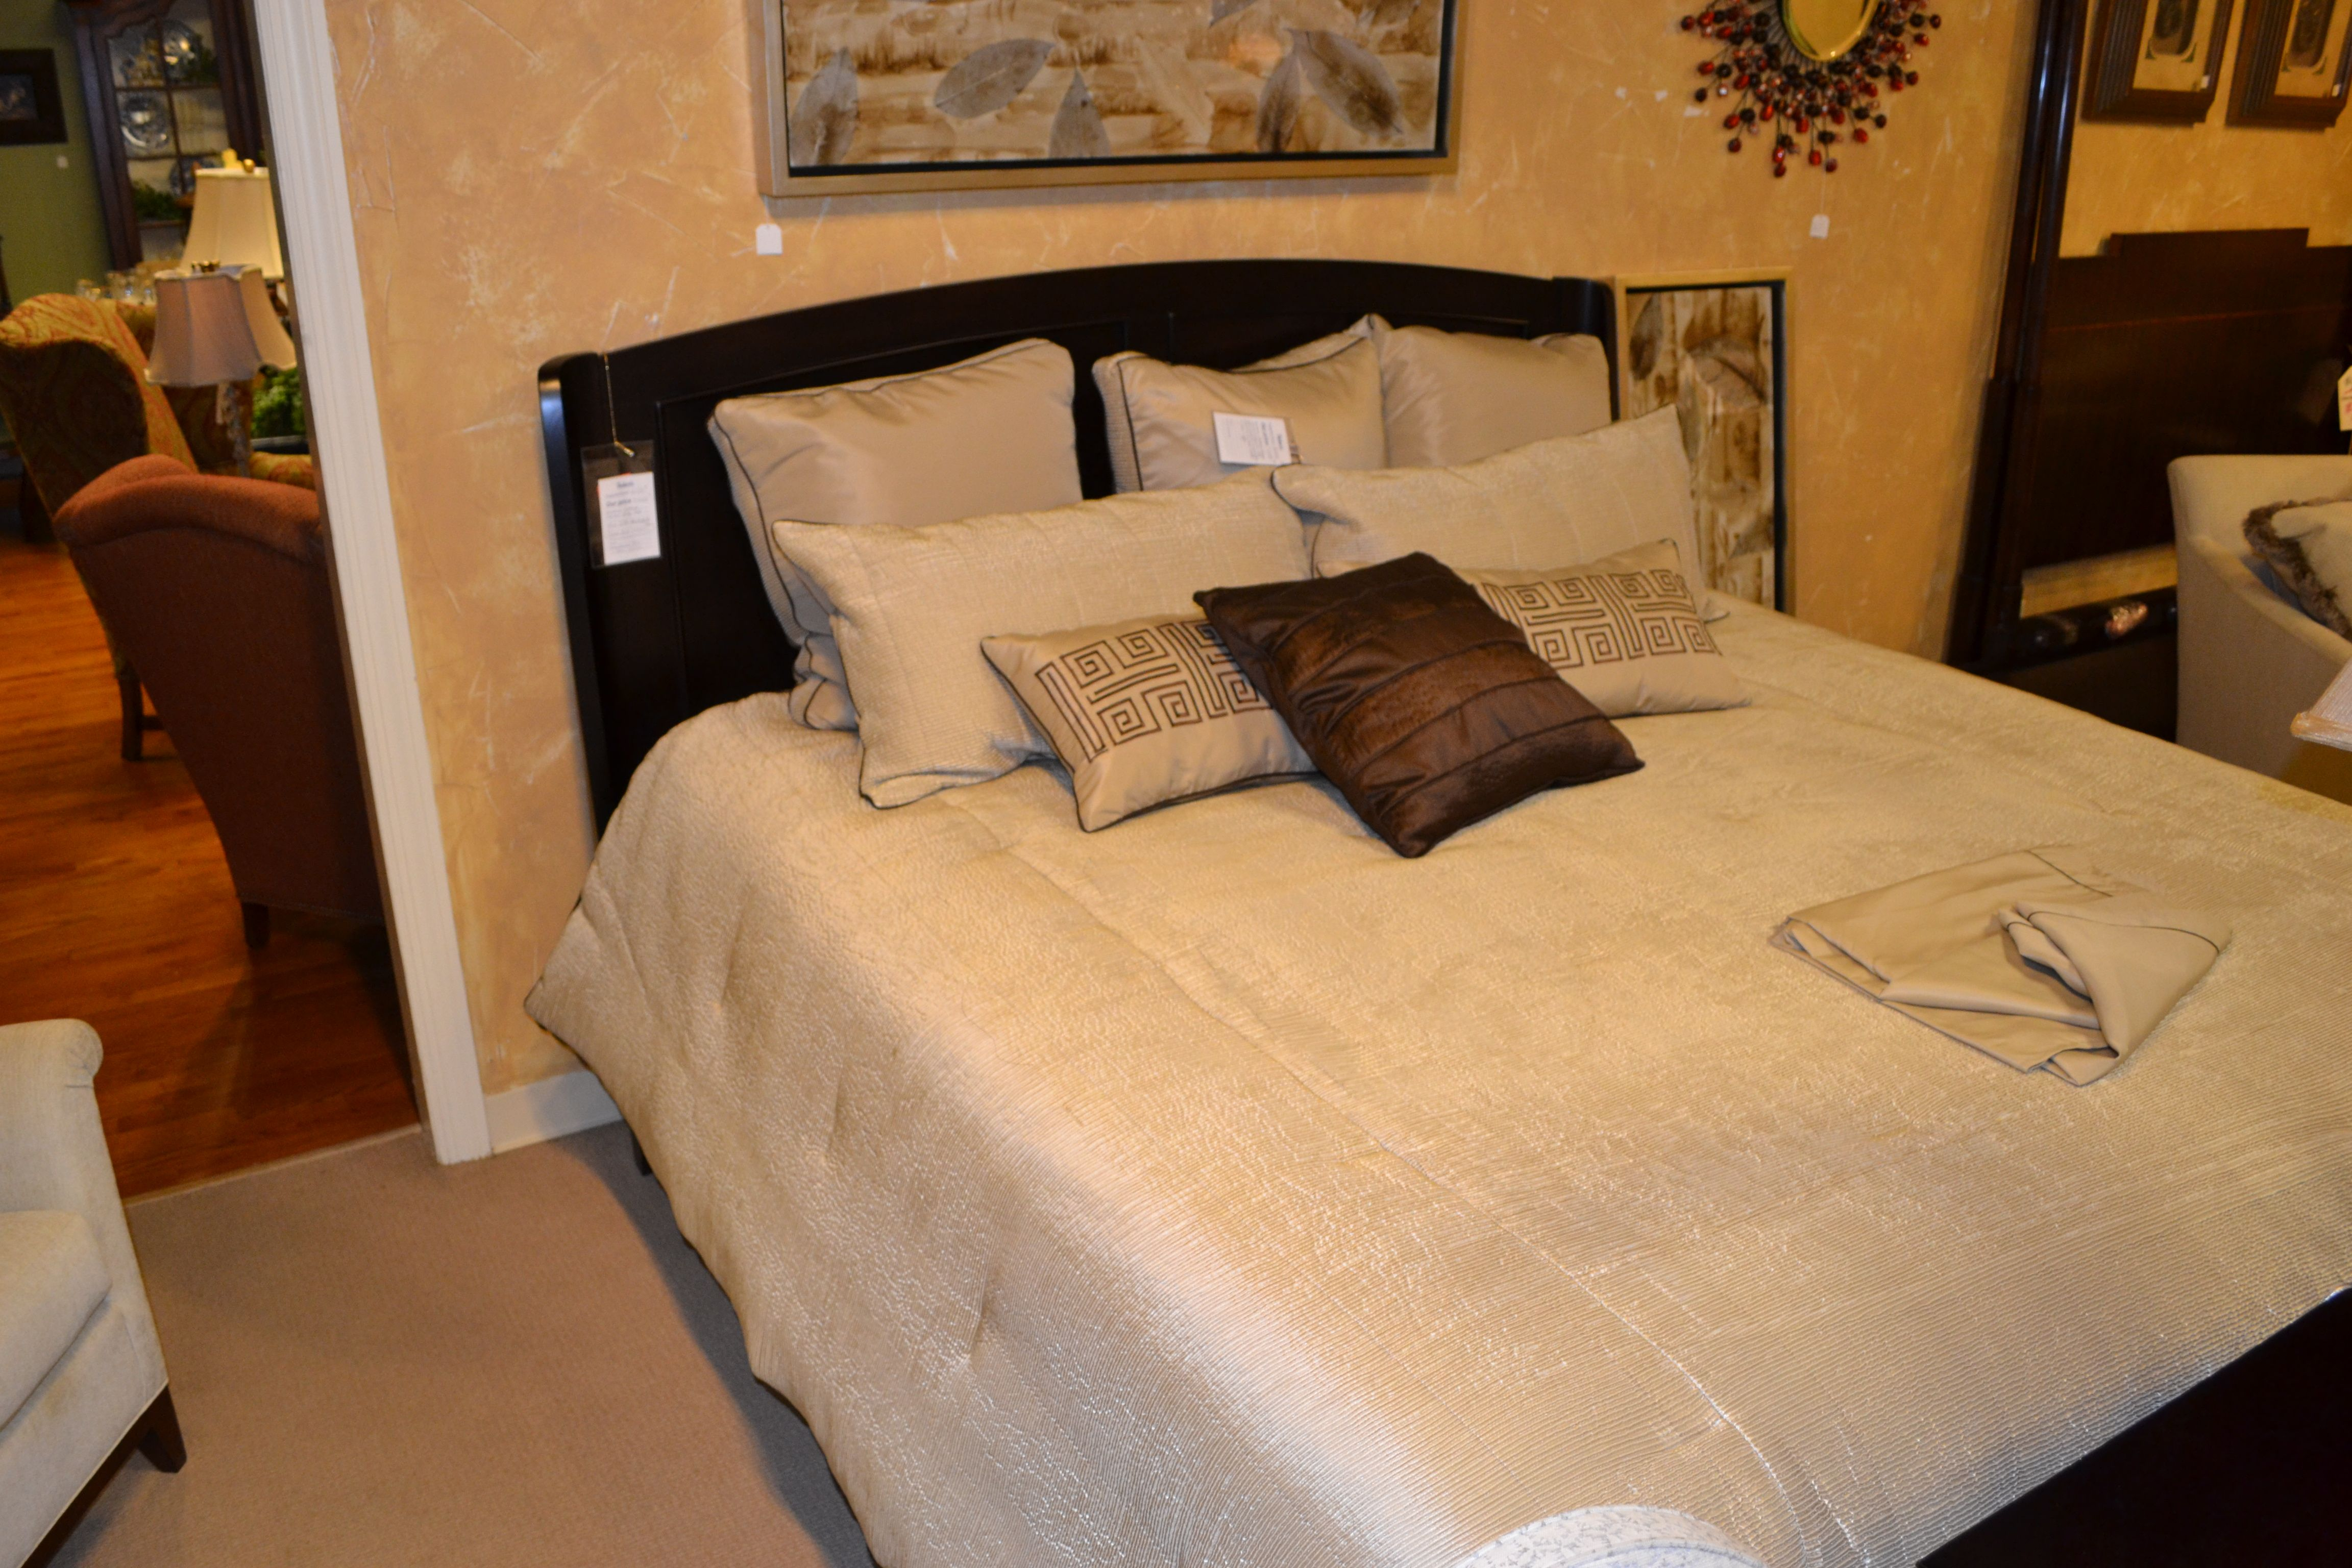 Cresent King And Queen Bed At Shubert Design And Furniture Bedroom Furniture Furniture Quality Bedroom Furniture